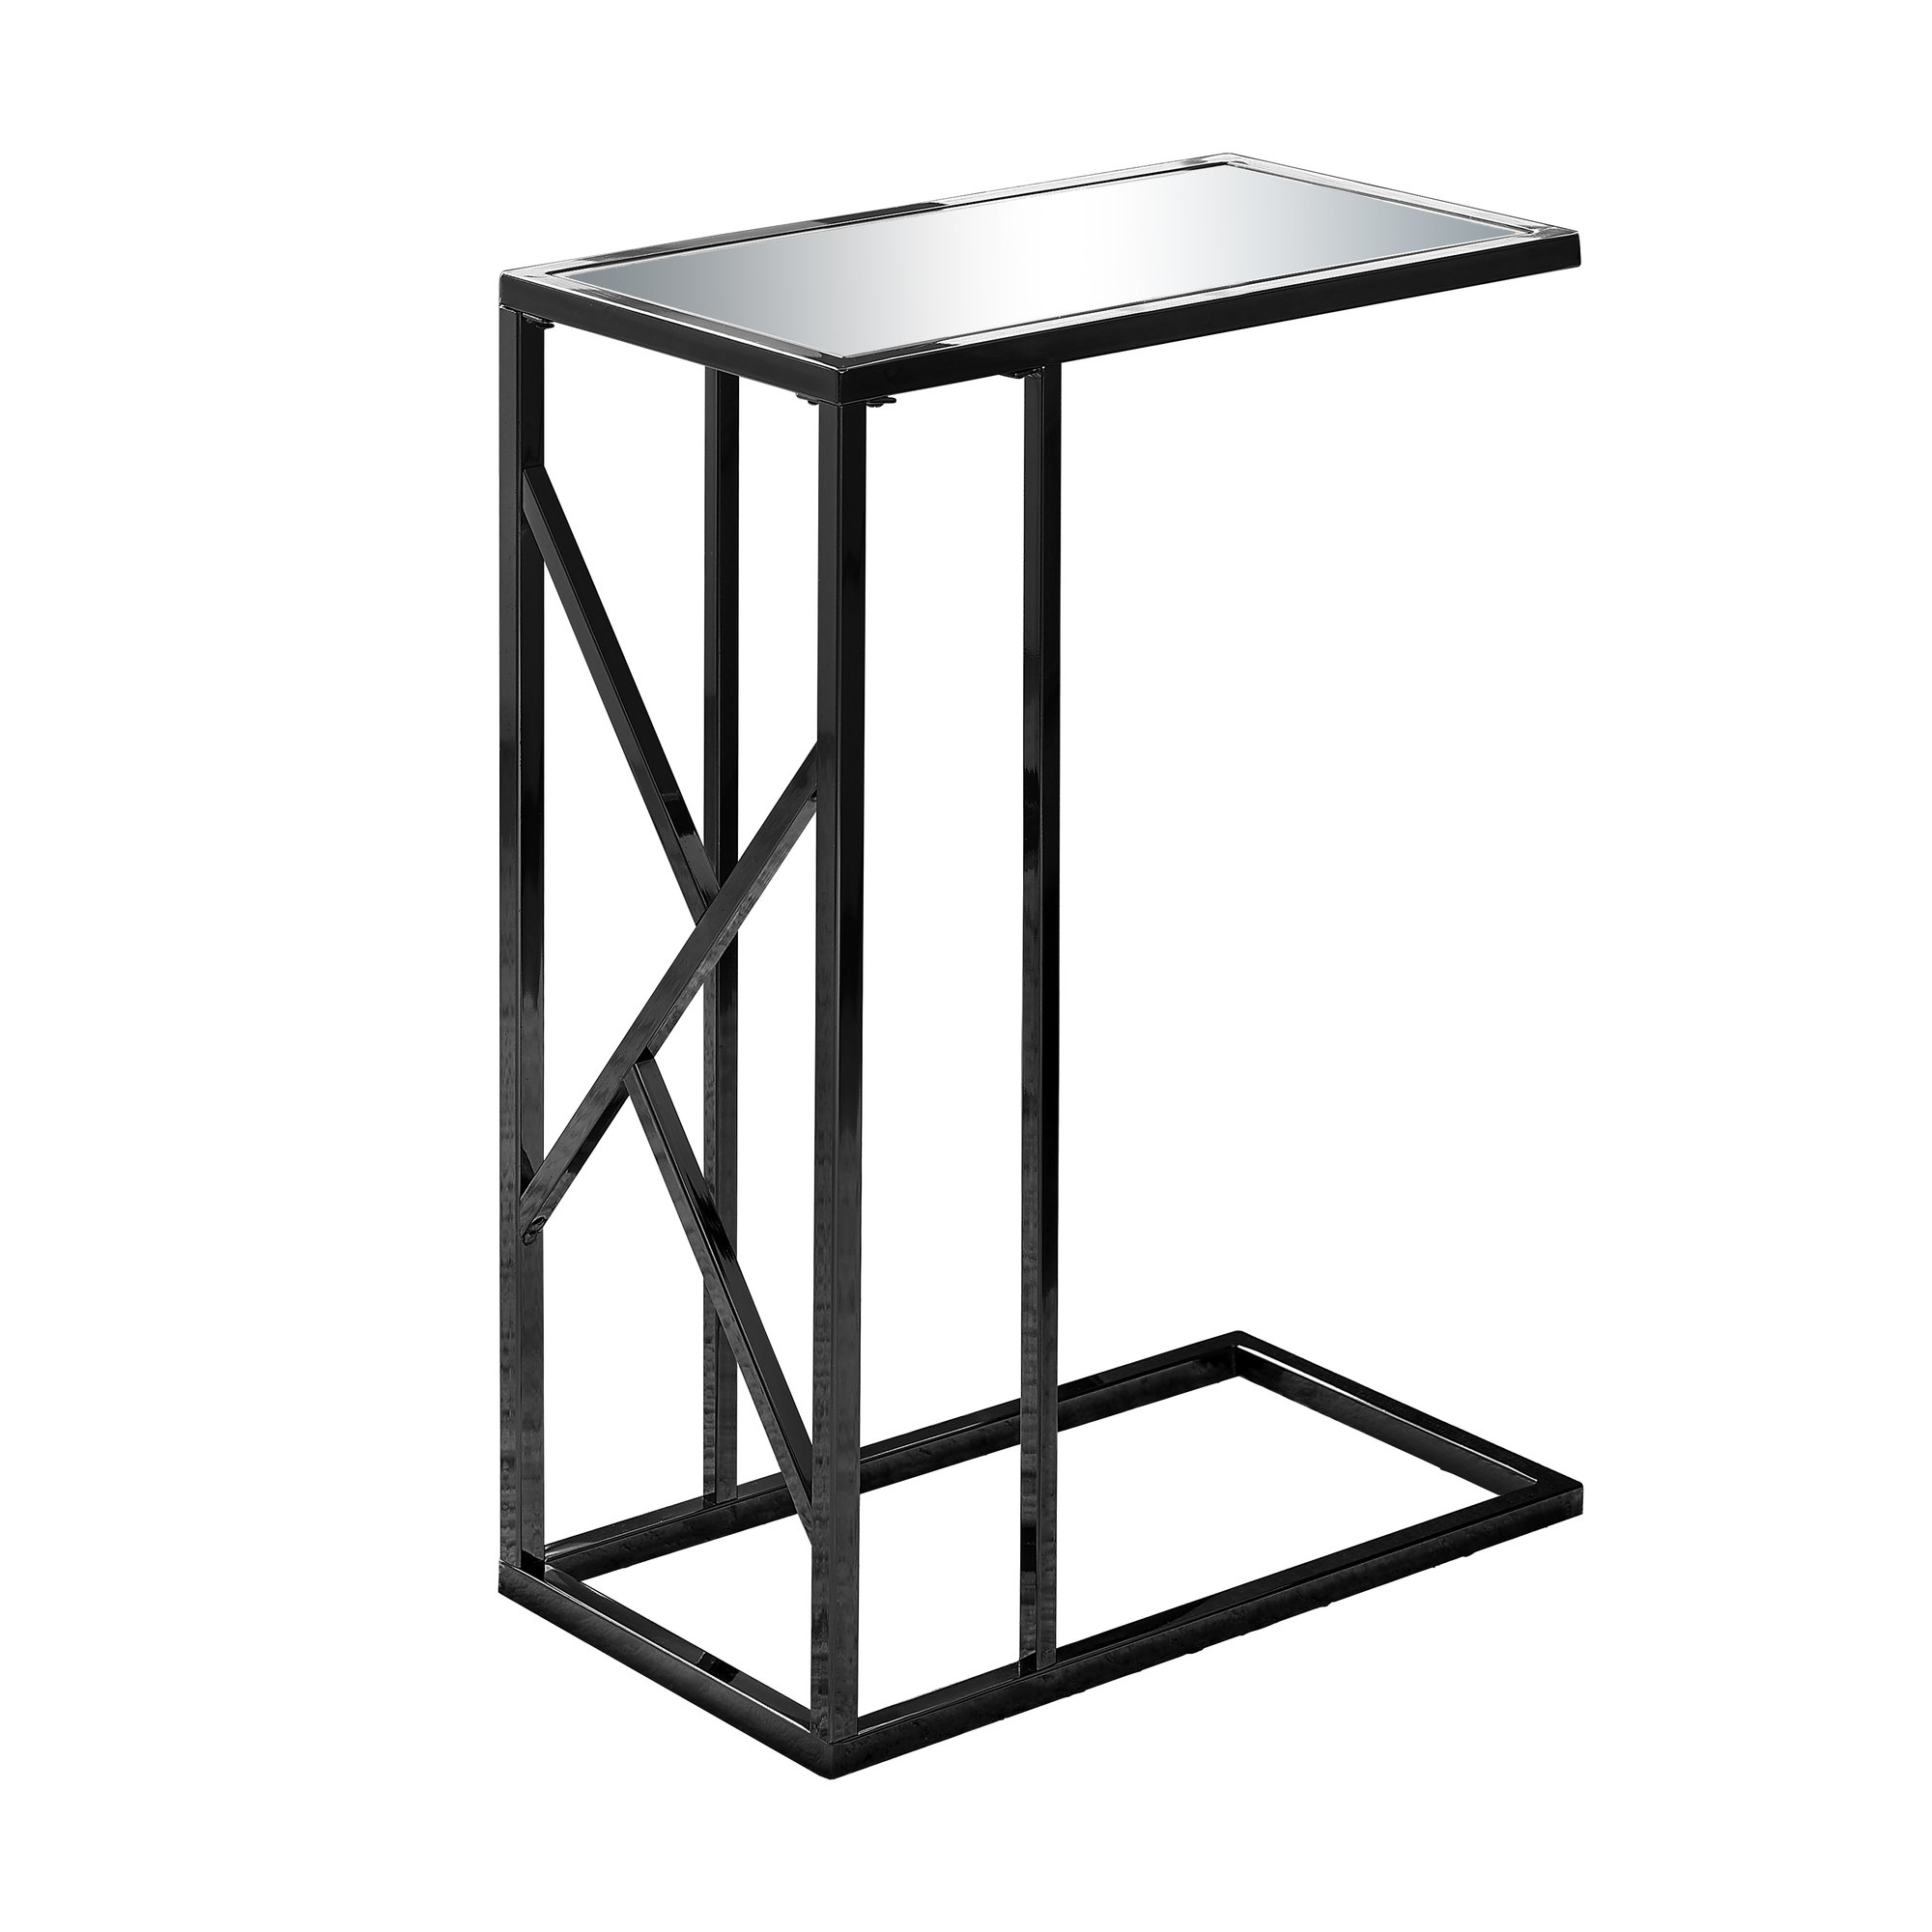 ACCENT TABLE - BLACK NICKEL METAL / MIRROR TOP